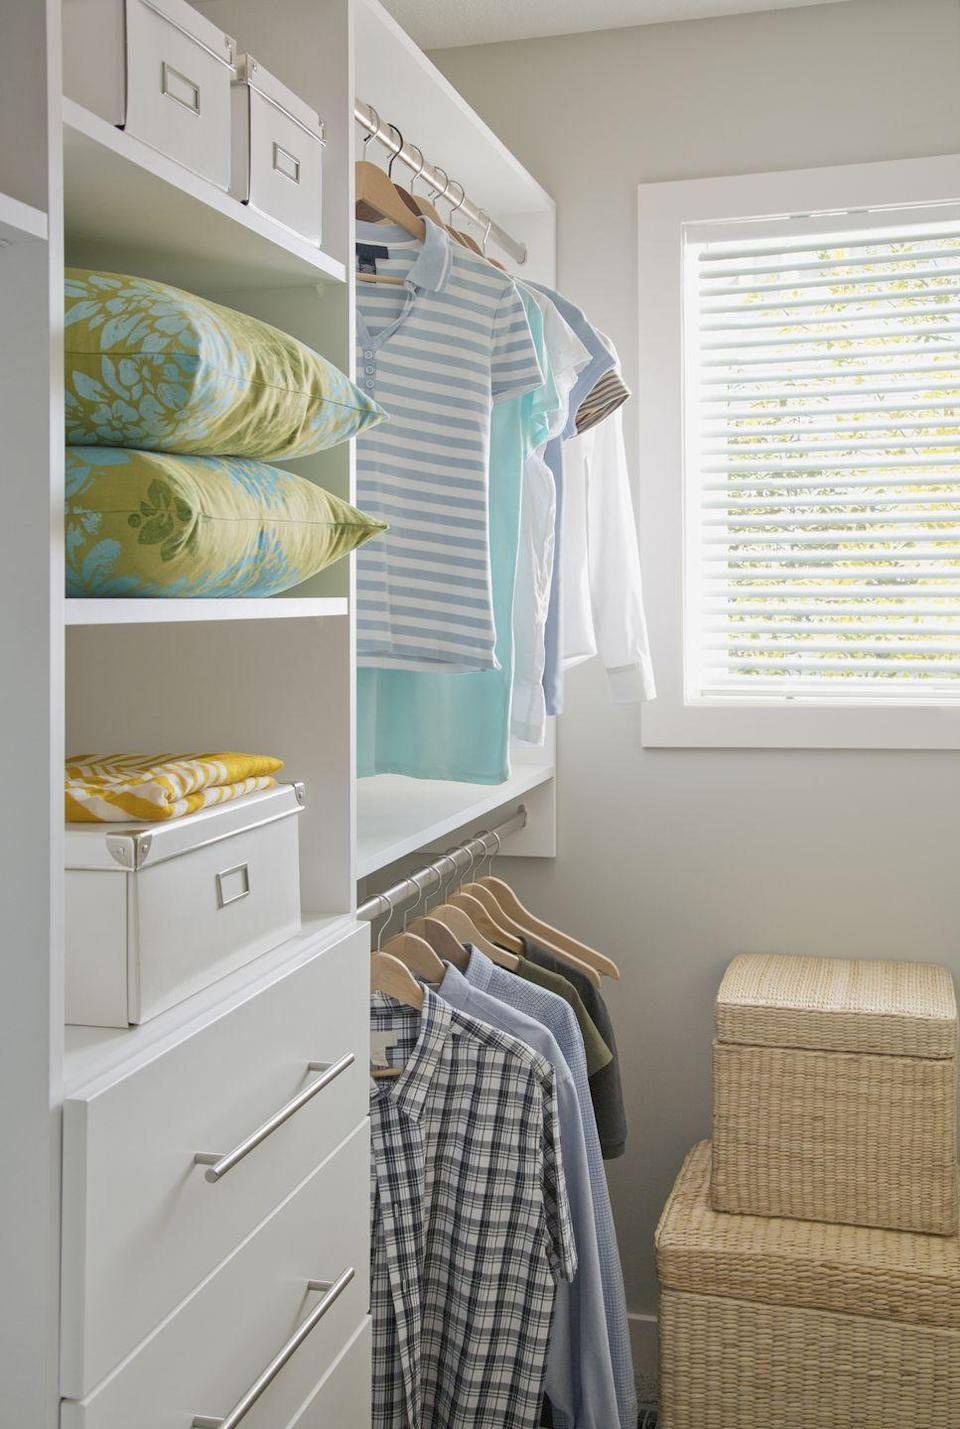 """<p>No room for a dresser? One or two sets of plastic or canvas hanging shelves <a href=""""https://www.womansday.com/home/organizing-cleaning/tips/g298/closet-organization-storage-ideas/"""" rel=""""nofollow noopener"""" target=""""_blank"""" data-ylk=""""slk:in the closet"""" class=""""link rapid-noclick-resp"""">in the closet</a> make choosing clothes much easier. </p><p><strong><a class=""""link rapid-noclick-resp"""" href=""""https://www.amazon.com/Hanging-Organizer-MaidMAX-Collapsible-Accessories/dp/B01GNN49Q8/?tag=syn-yahoo-20&ascsubtag=%5Bartid%7C10070.g.3310%5Bsrc%7Cyahoo-us"""" rel=""""nofollow noopener"""" target=""""_blank"""" data-ylk=""""slk:SHOP HANGING SHELVES"""">SHOP HANGING SHELVES</a></strong></p>"""